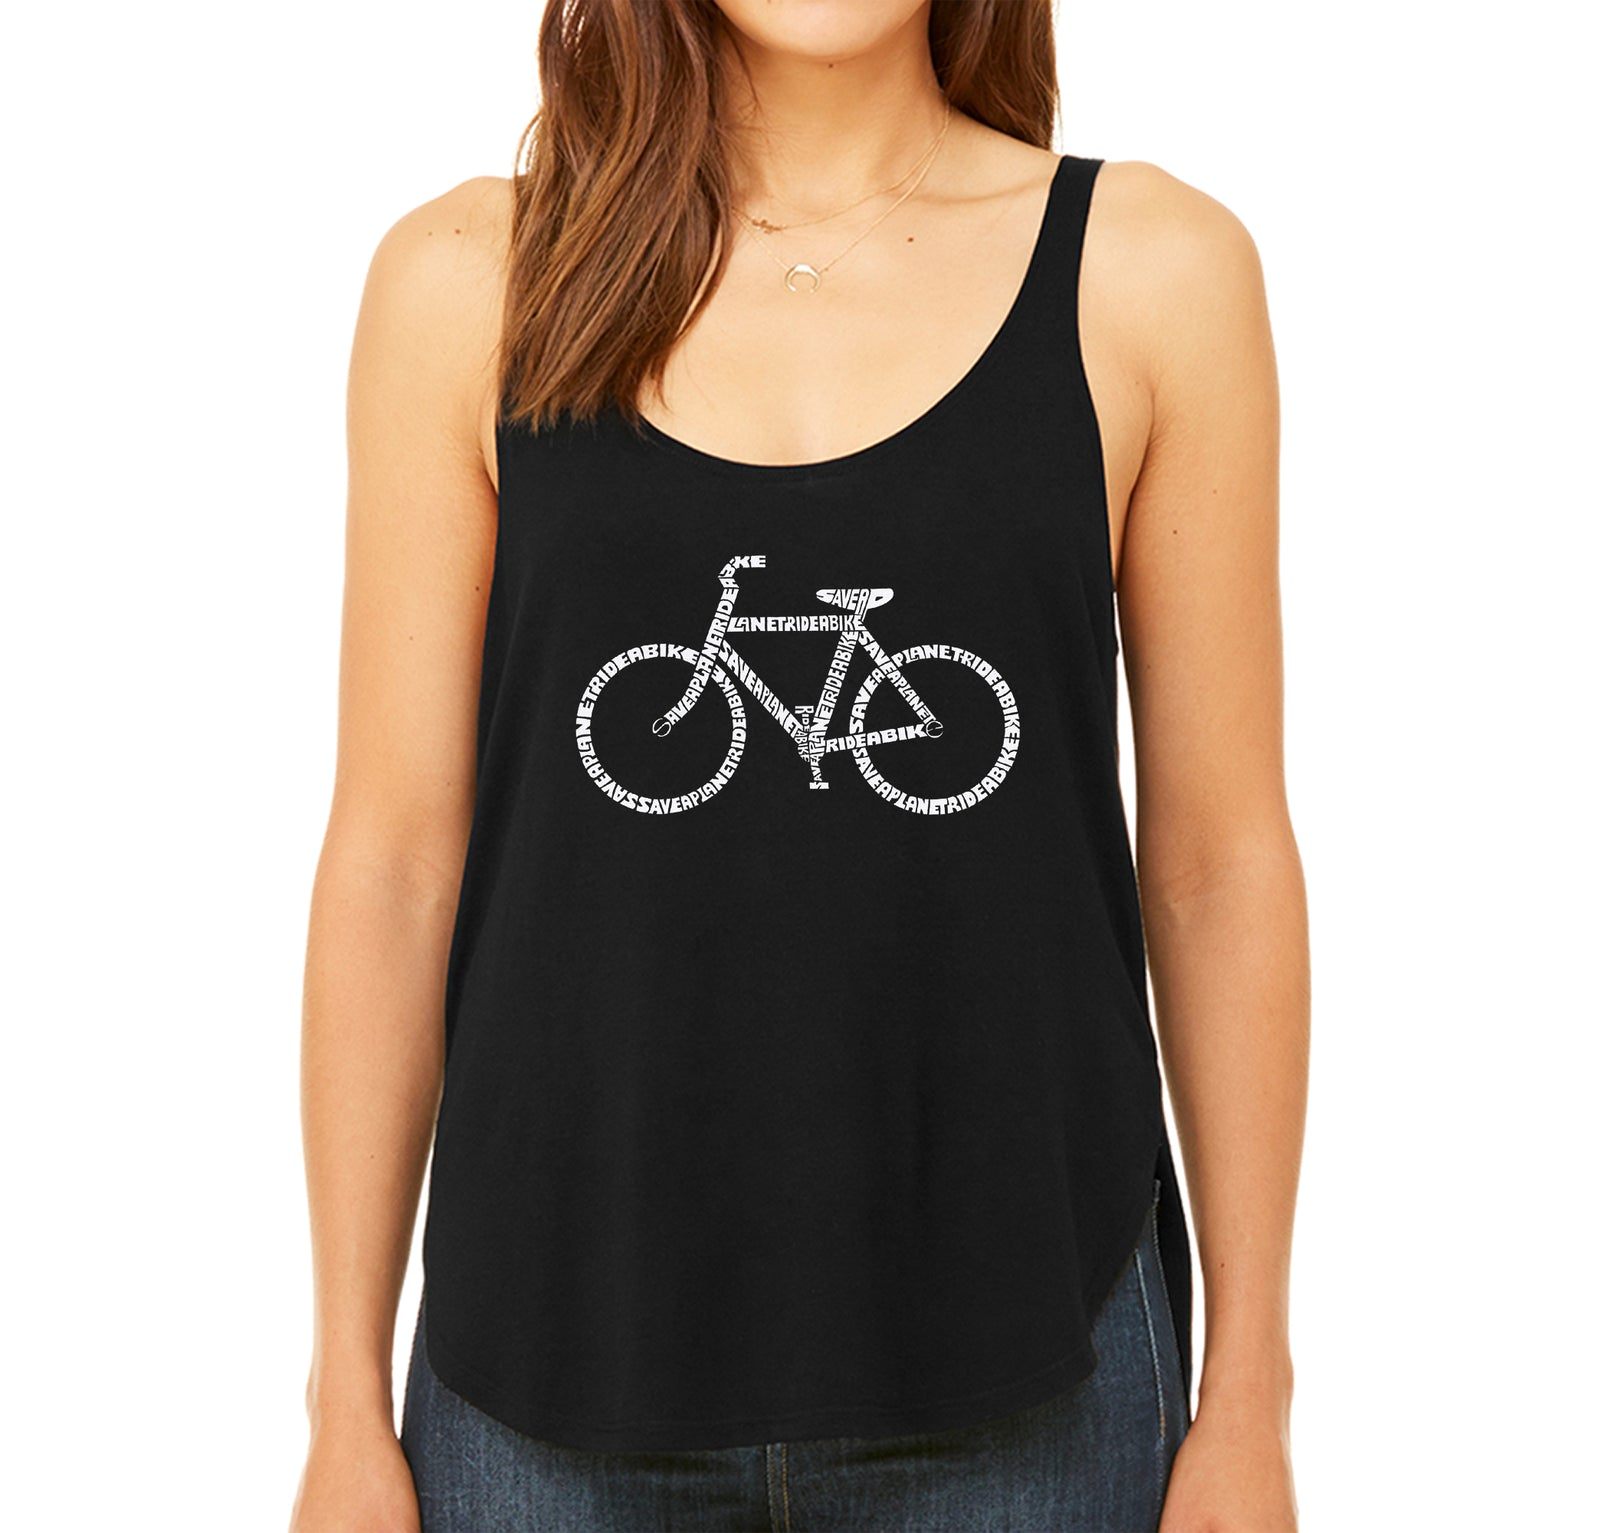 Women's Premium Word Art Flowy Tank Top - SAVE A PLANET, RIDE A BIKE